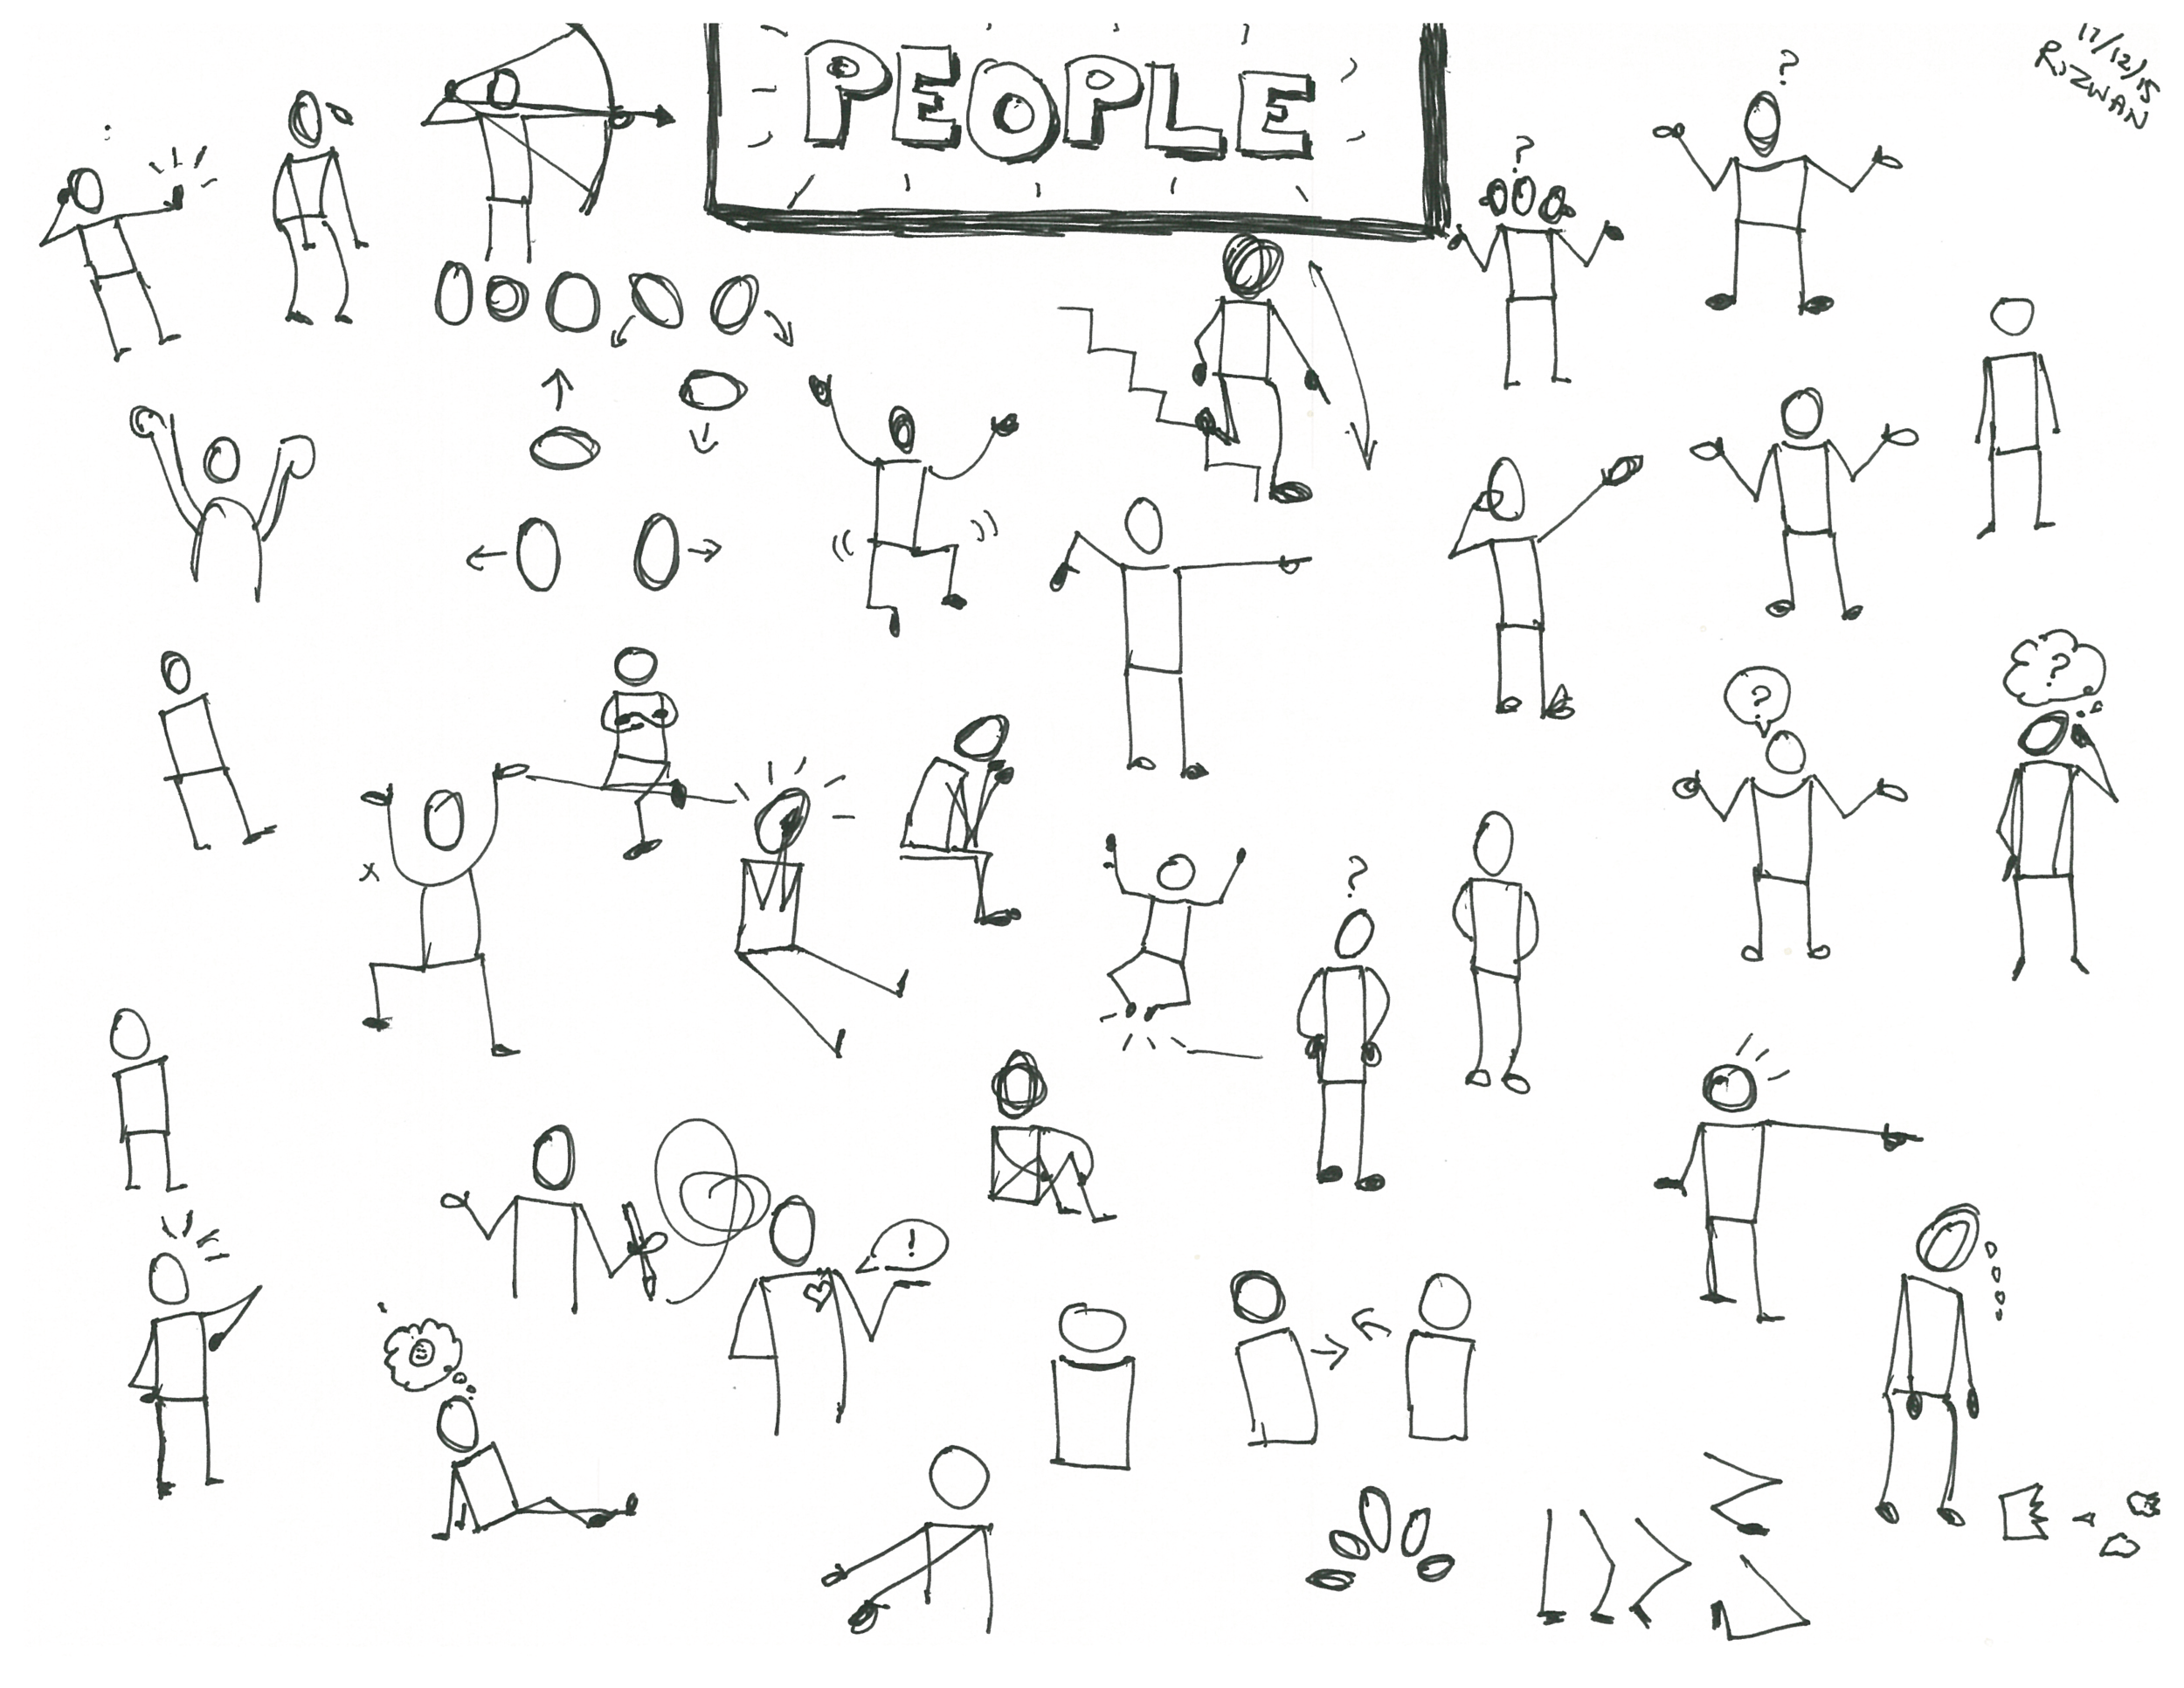 people-min.png